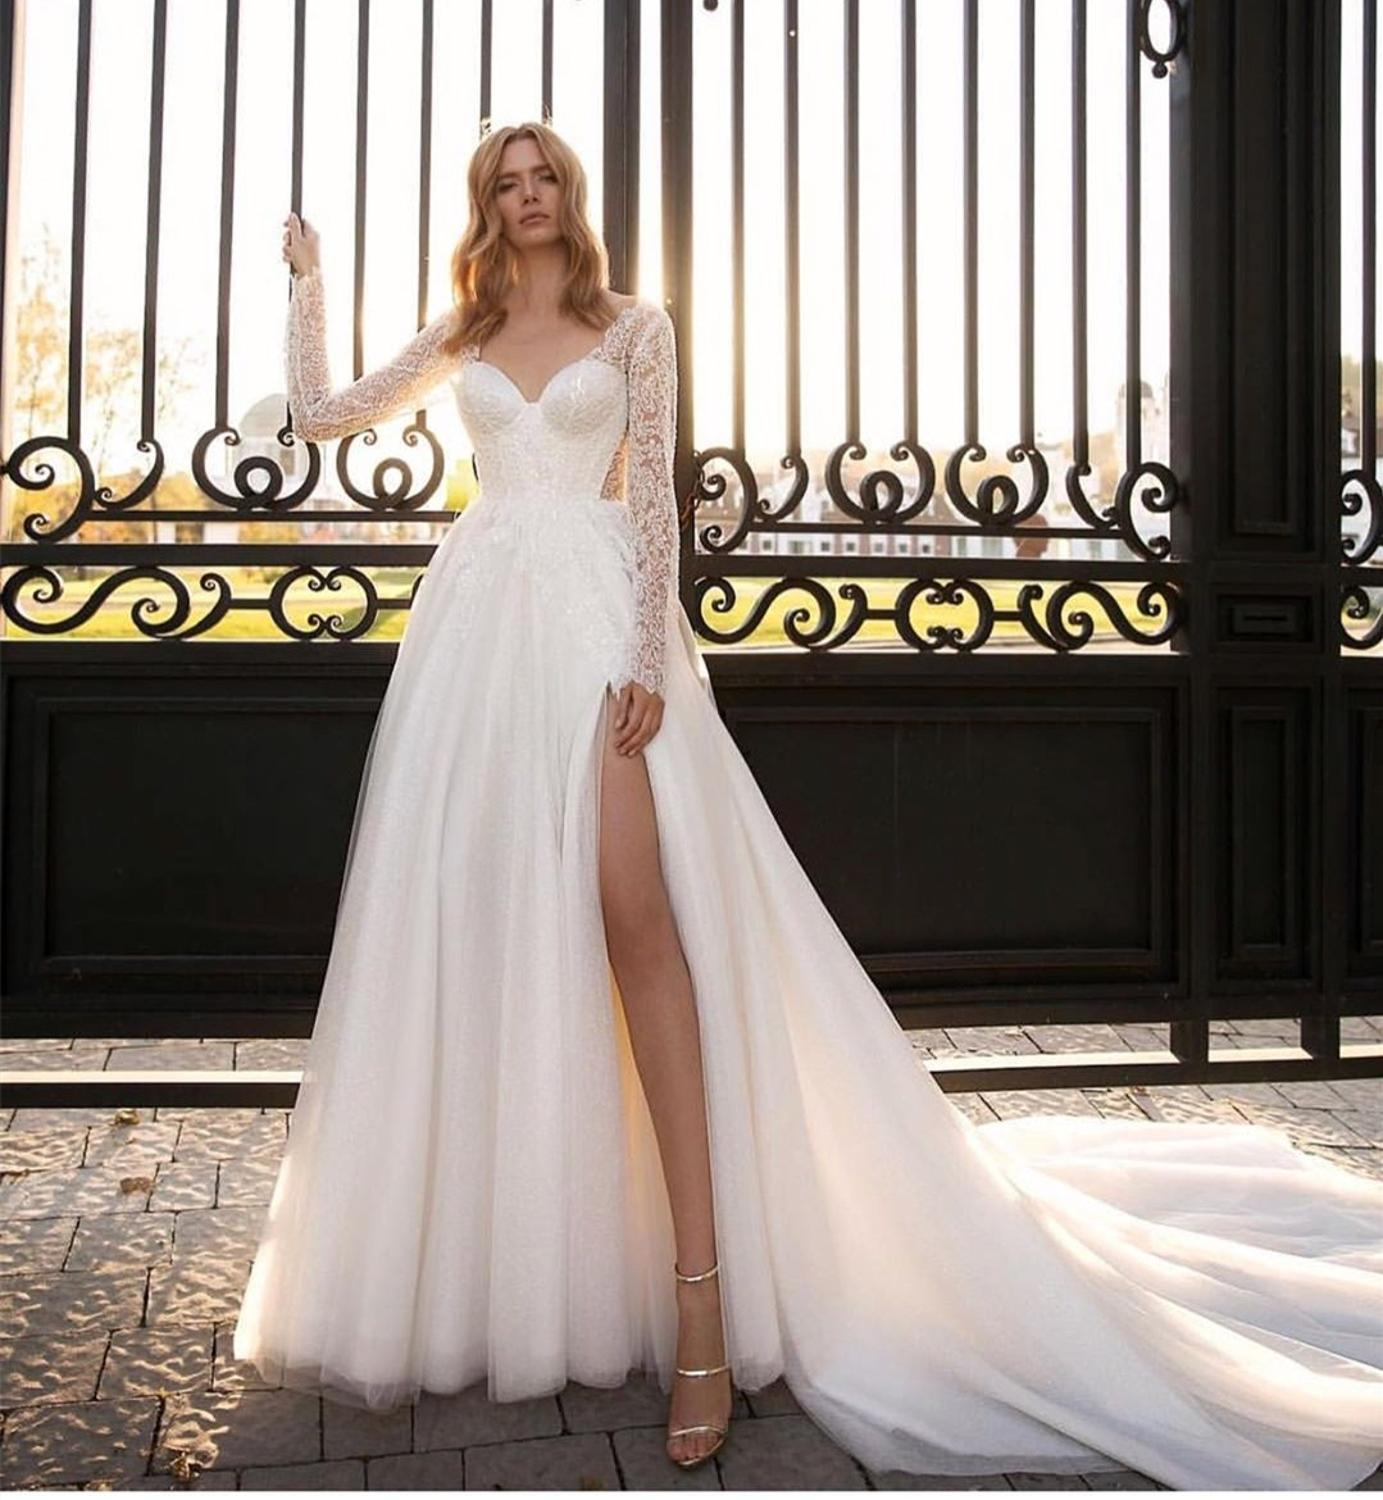 2020 Wedding Dress Long Sleeve Bridal Gowns Side Slit Floor Length Tulle With Long Train Sexy Lace Vestido De Noiva De Manga